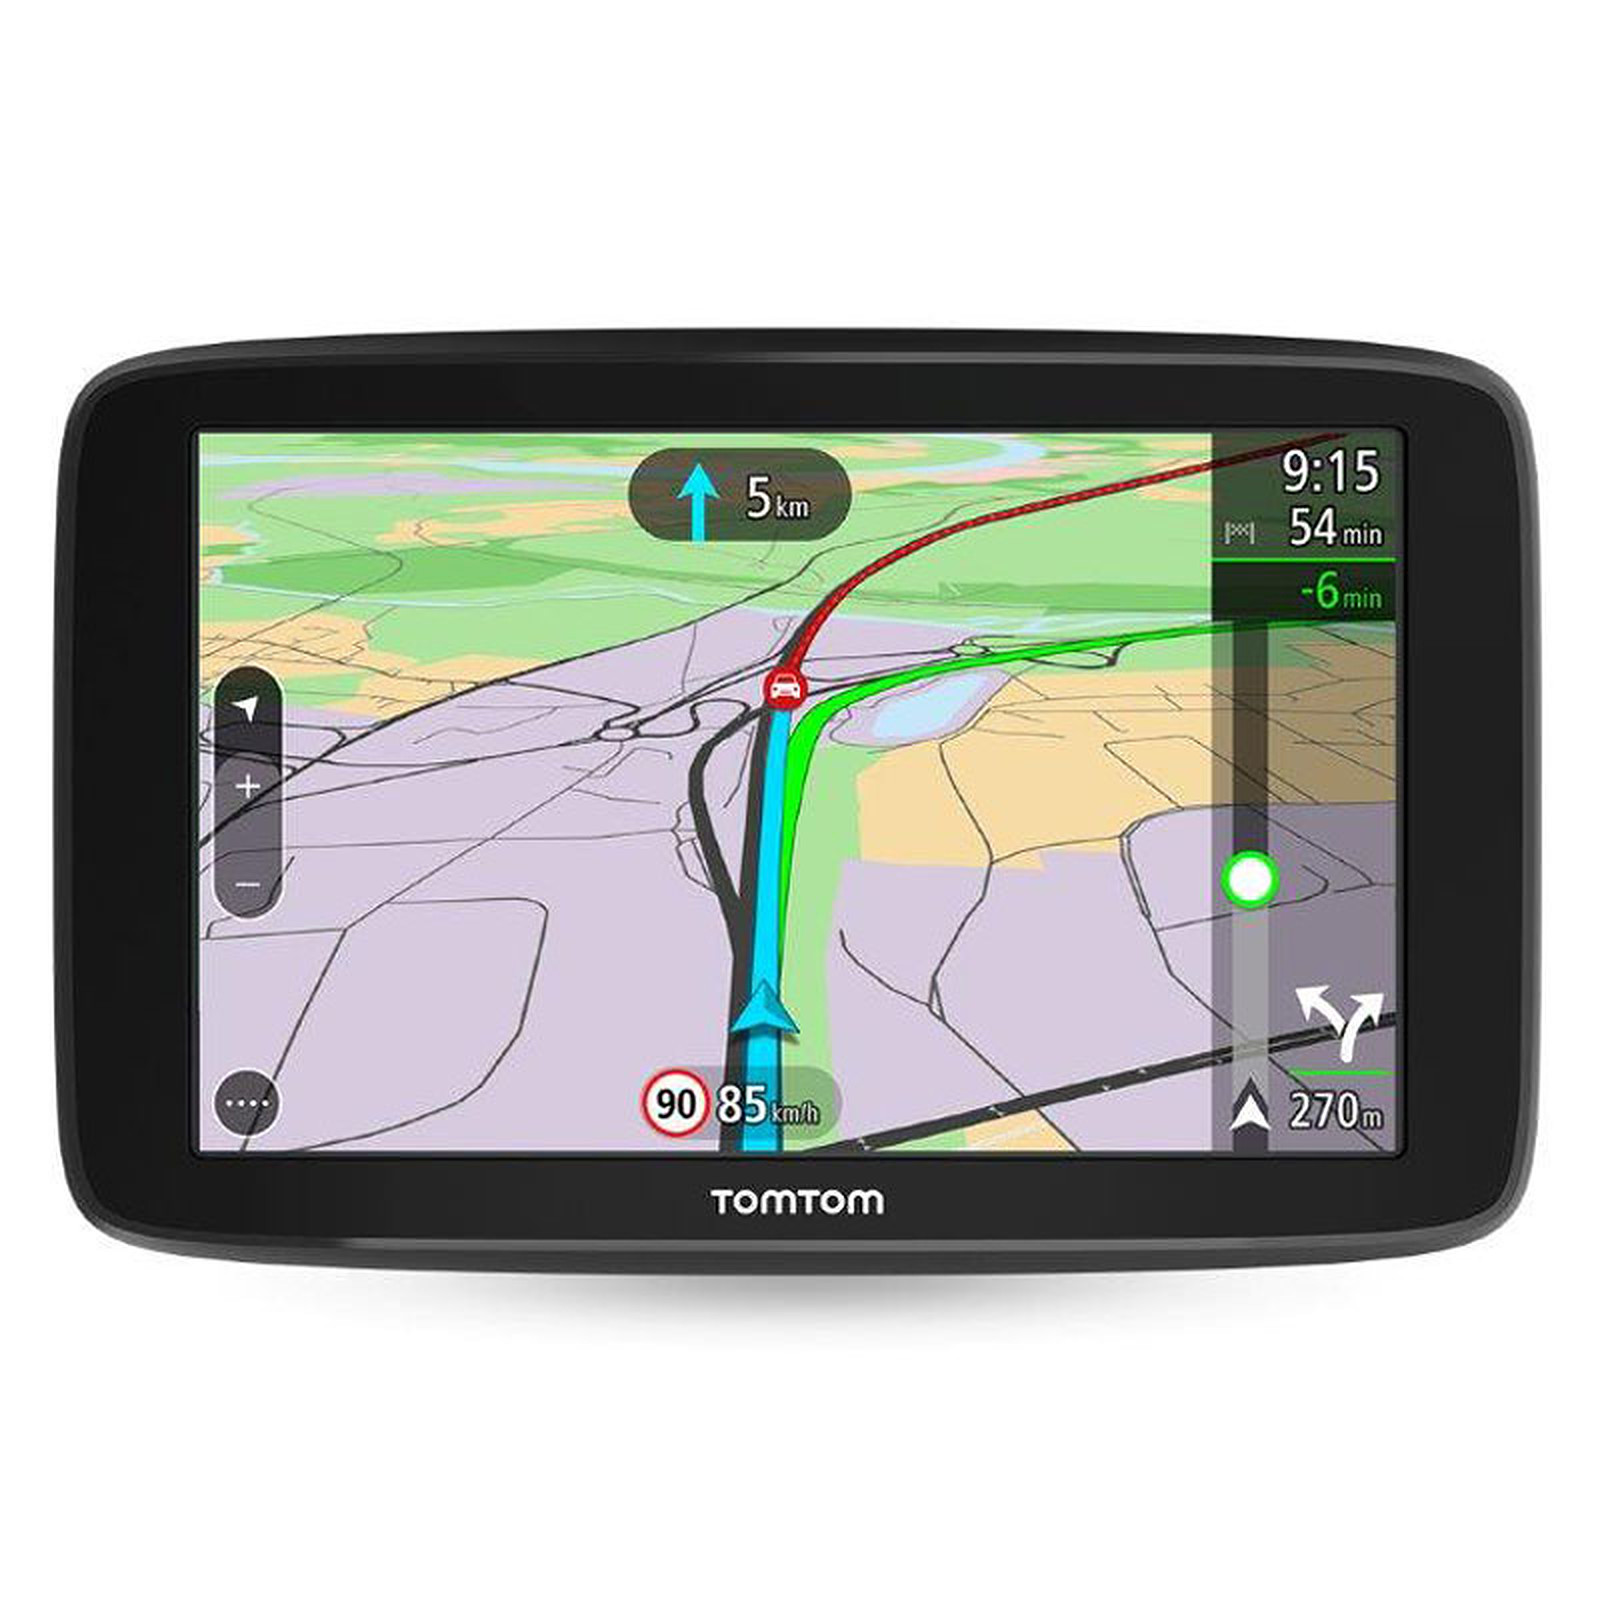 tomtom go basic 6 gps tomtom sur. Black Bedroom Furniture Sets. Home Design Ideas